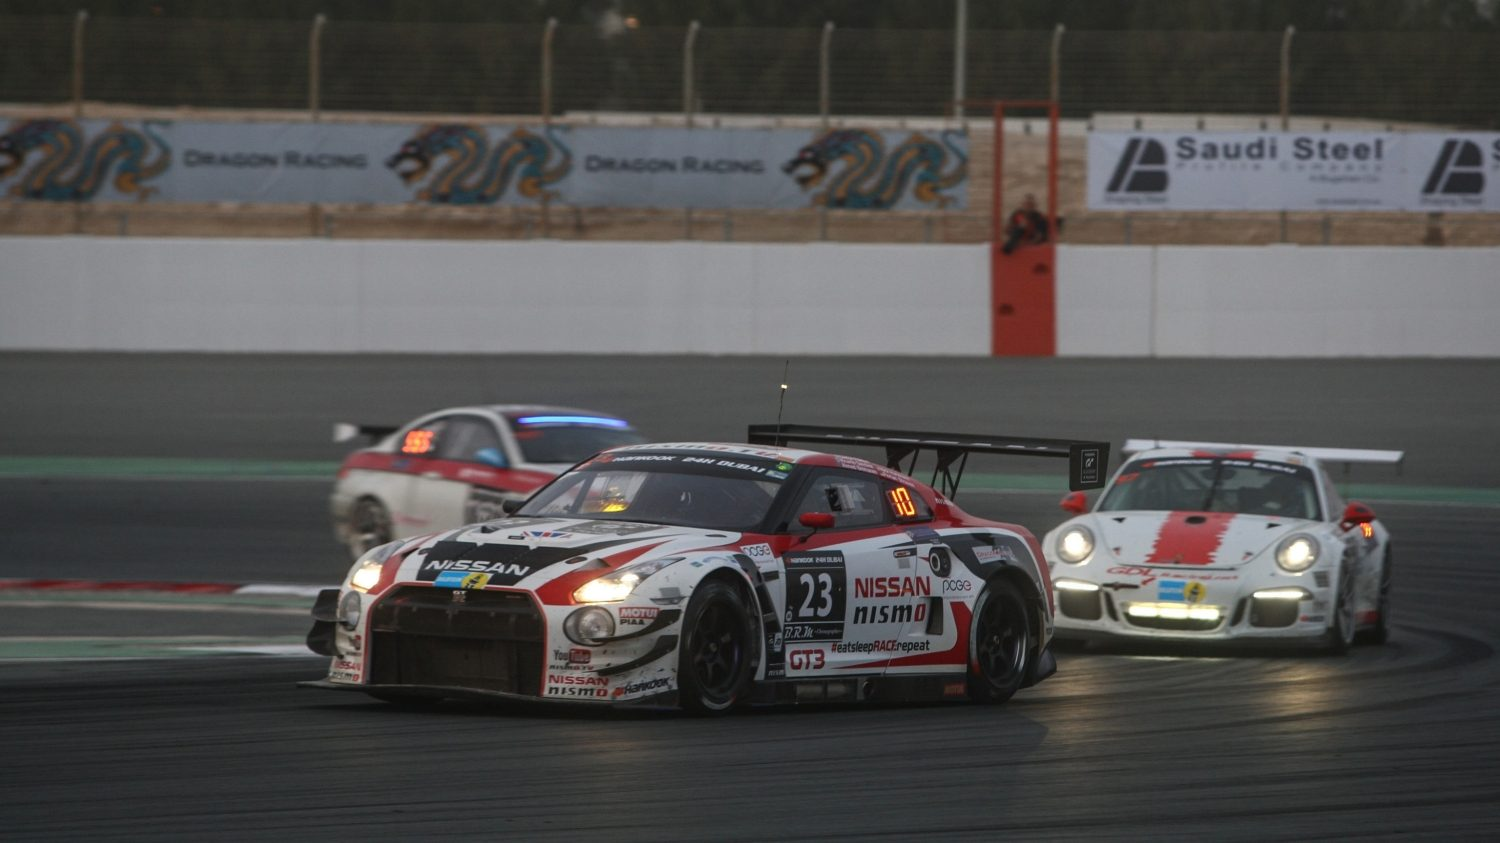 Experience Nissan - Motorsport - Cars on track